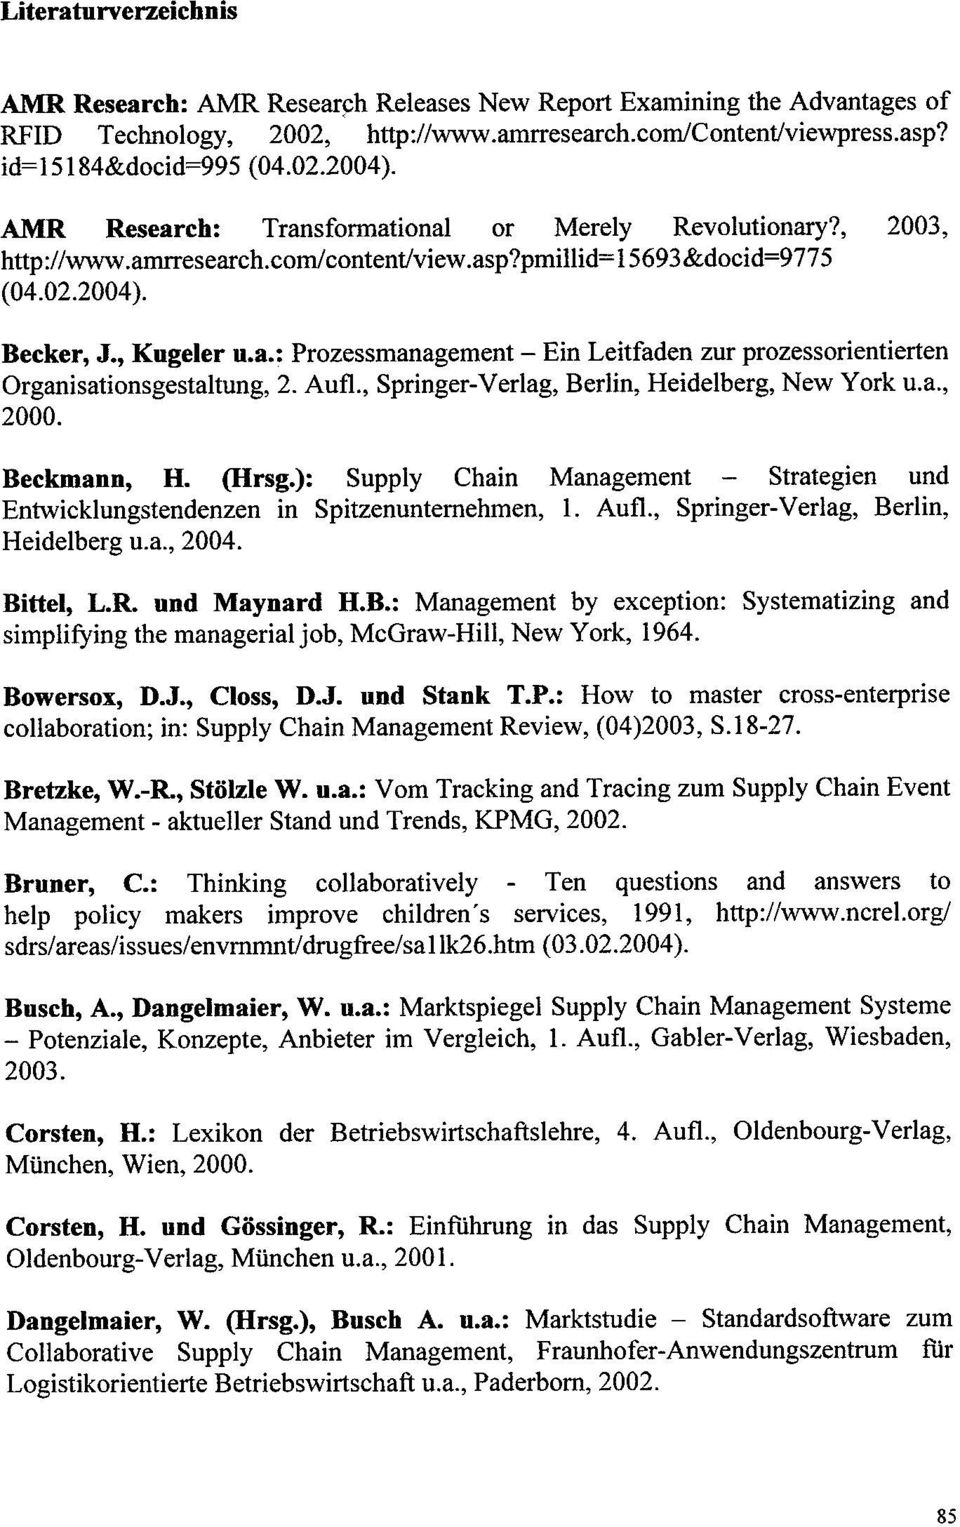 Aufl., Springer-Verlag, Berlin, Heidelberg, New York u.a., 2000. Beckmann, H. (IIrsg.): Supply Chain Management - Strategien und Entwicklungstendenzen in Spitzenuntemehmen, 1. Aufl.